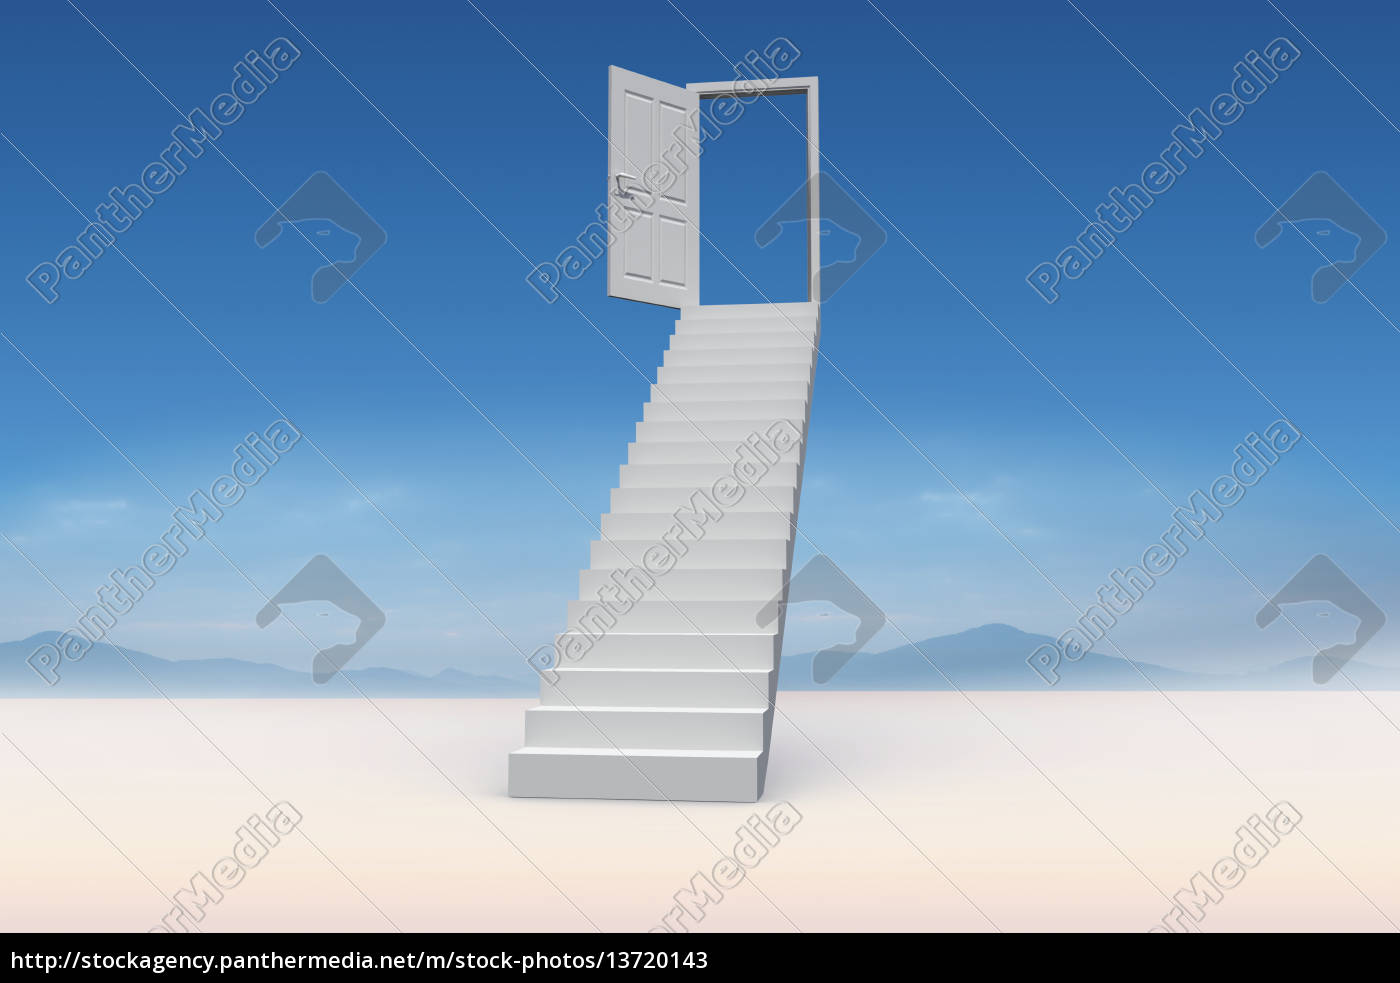 composite, image, of, stairs, leading, to - 13720143